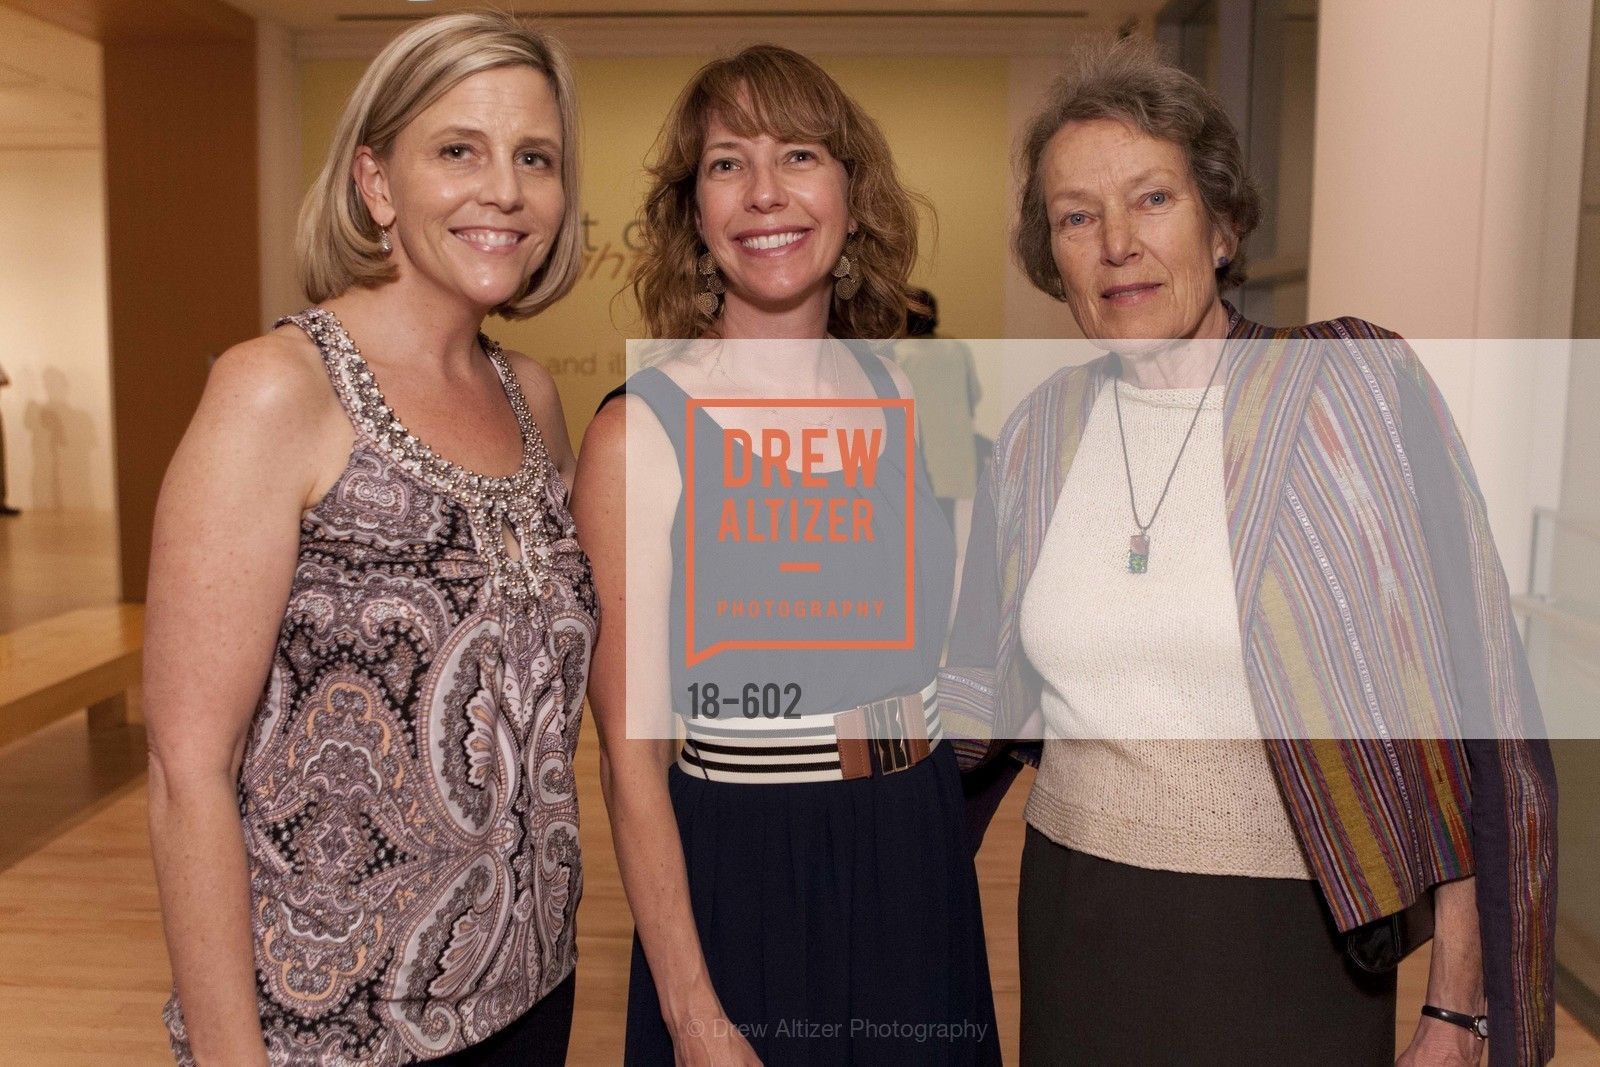 Elizabeth Striebeck, Lucy Larson, Doris Burgess, SAN JOSE MUSEUM OF ART Fall Reception Opening, US, October 8th, 2014,Drew Altizer, Drew Altizer Photography, full-service agency, private events, San Francisco photographer, photographer california